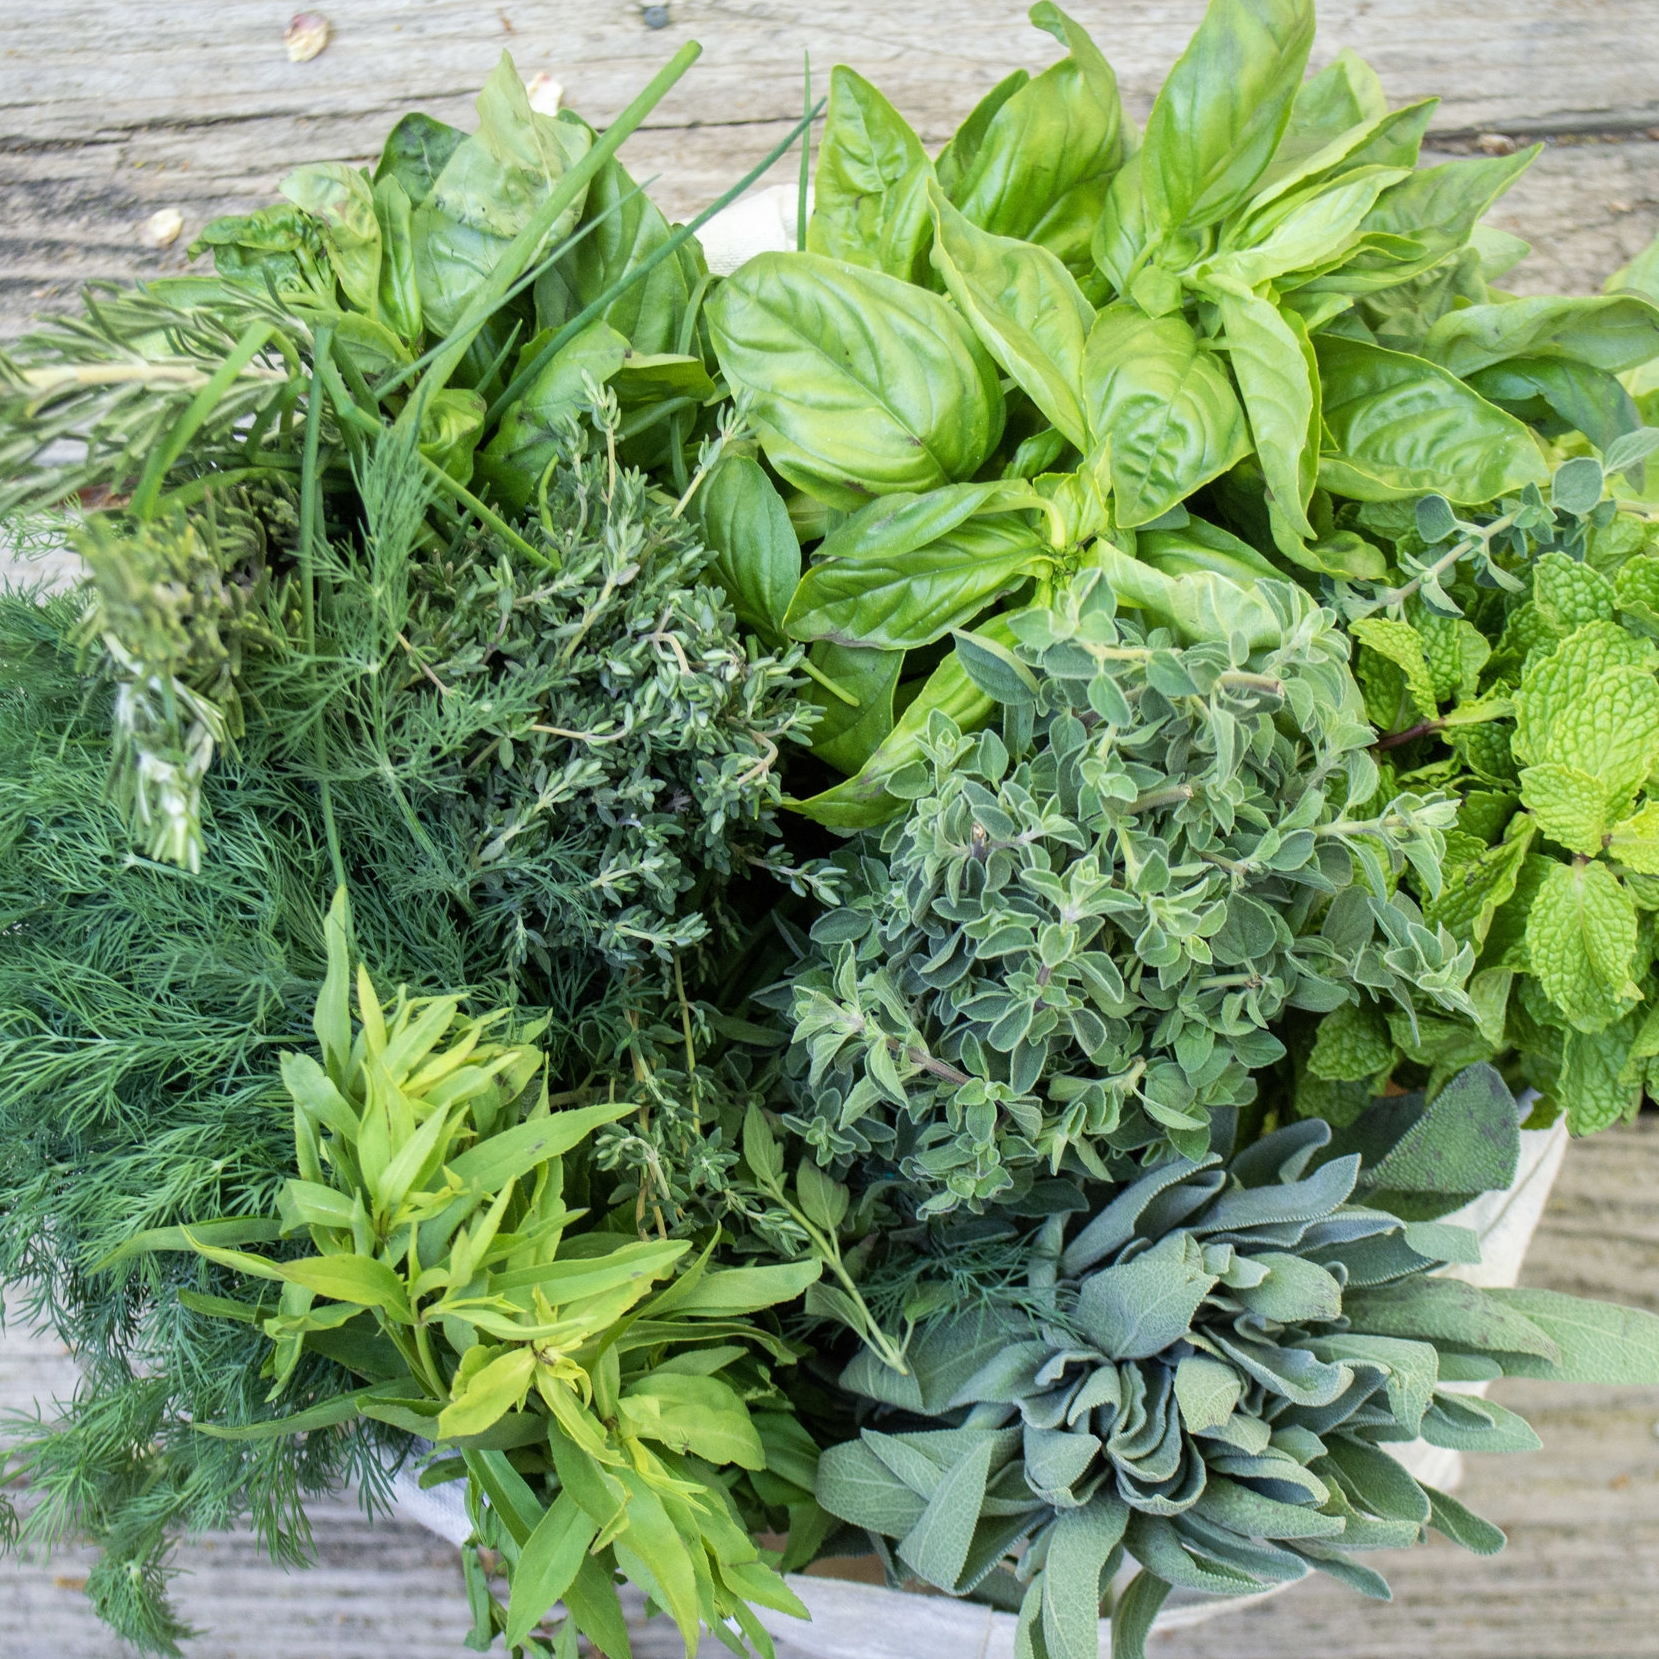 FRESH HERBS - Parsley, sage, rosemary and thyme.....plus cilantro,, mint, basil, and so much more.